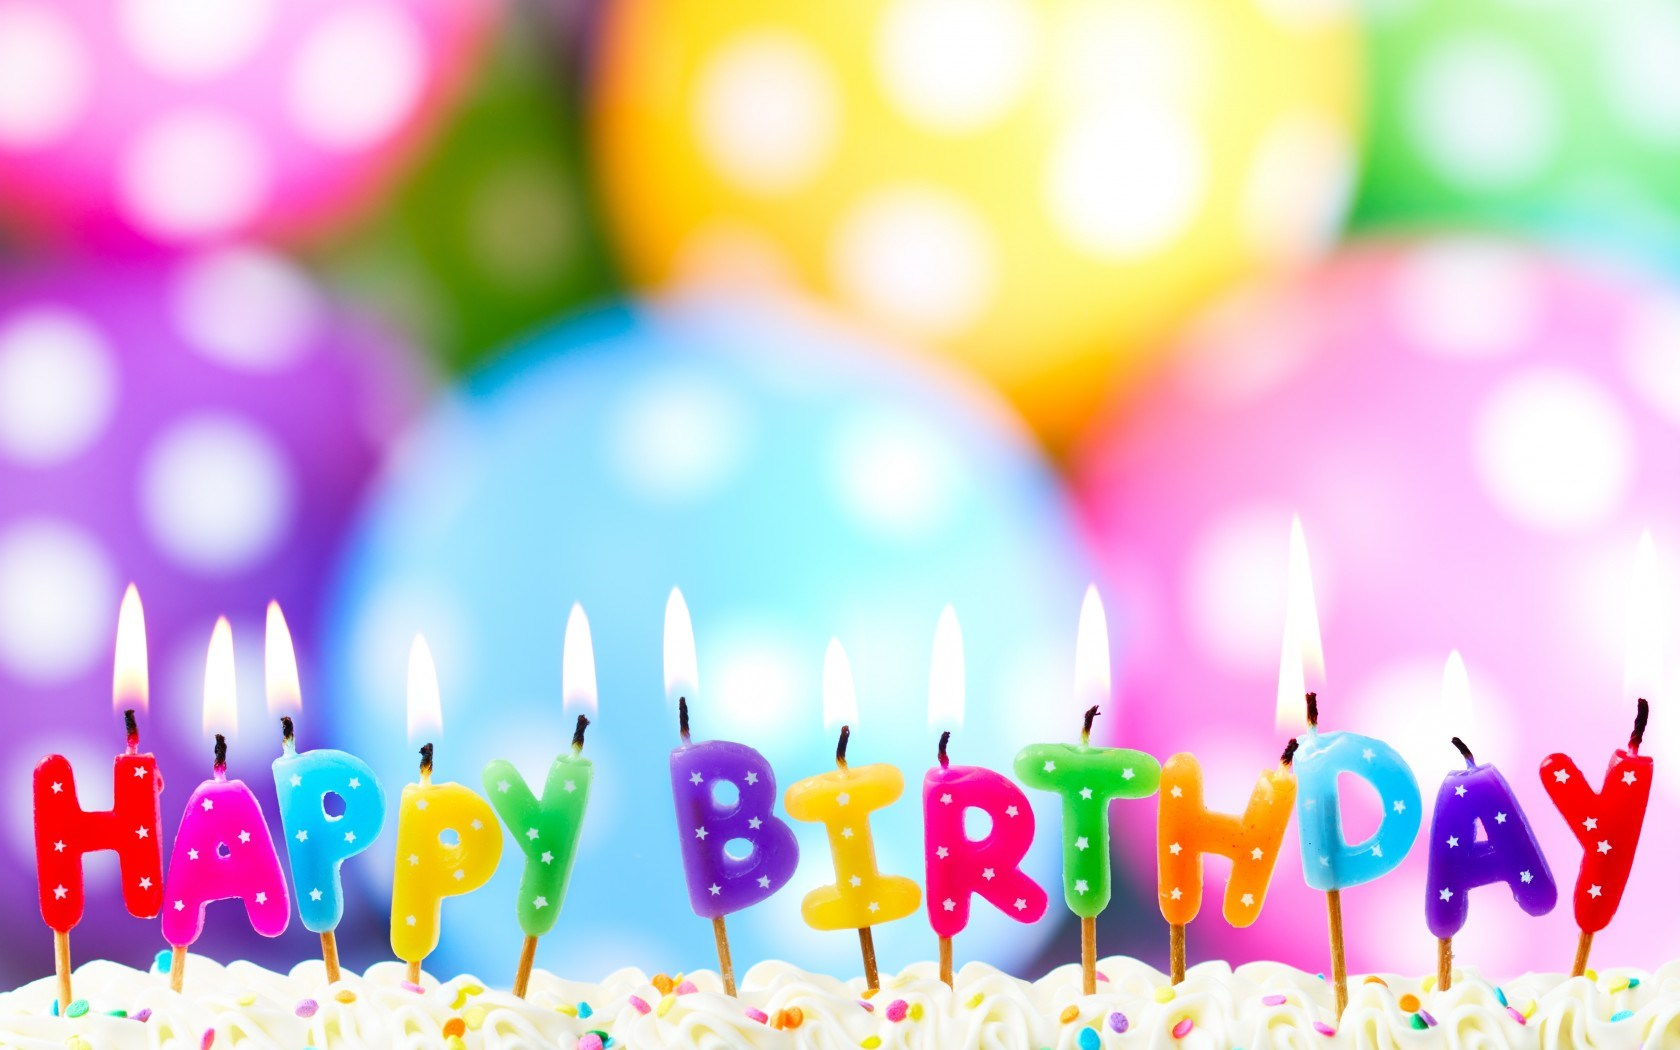 birthday background hd wallpapers ; 4876946-happy-birthday-hd-images